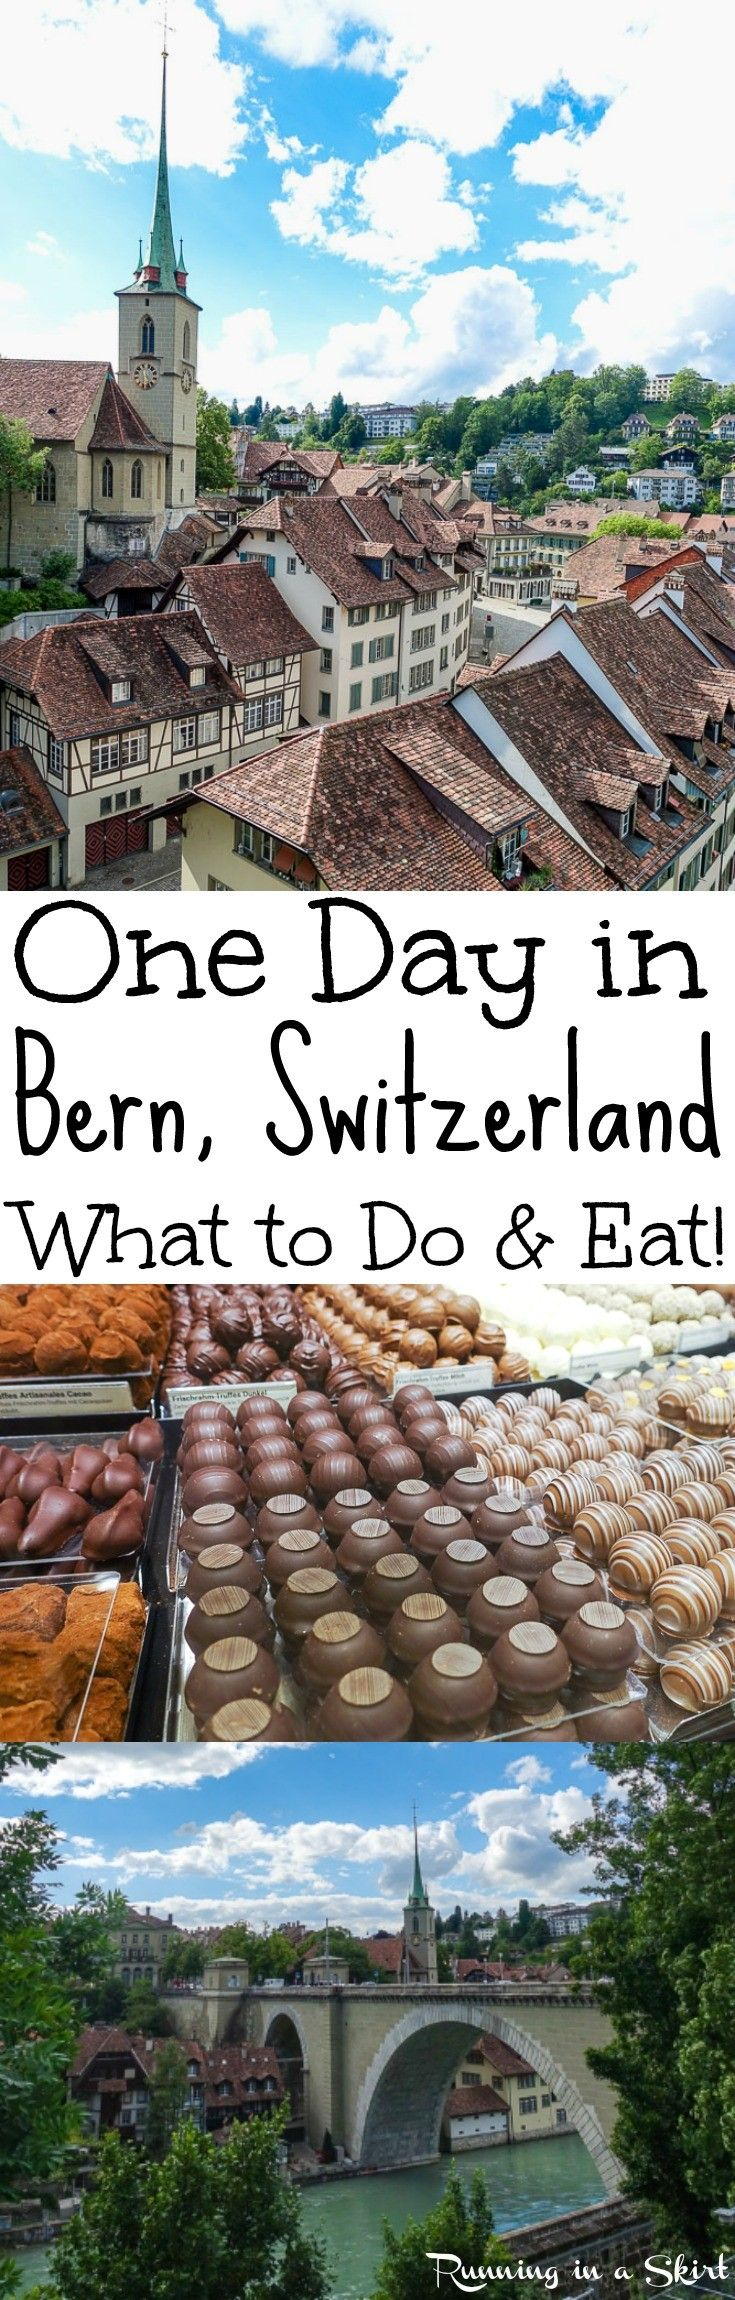 Things to Do with One Day in Bern, Switzerland... the capital of the country.  A charming travel destination in Europe with rivers, medieval architecture towers, a clock that puts on a show, good restaurants and bears.  Bucket list location for those with wanderlust-- pretty pictures too. / Running in a Skirt